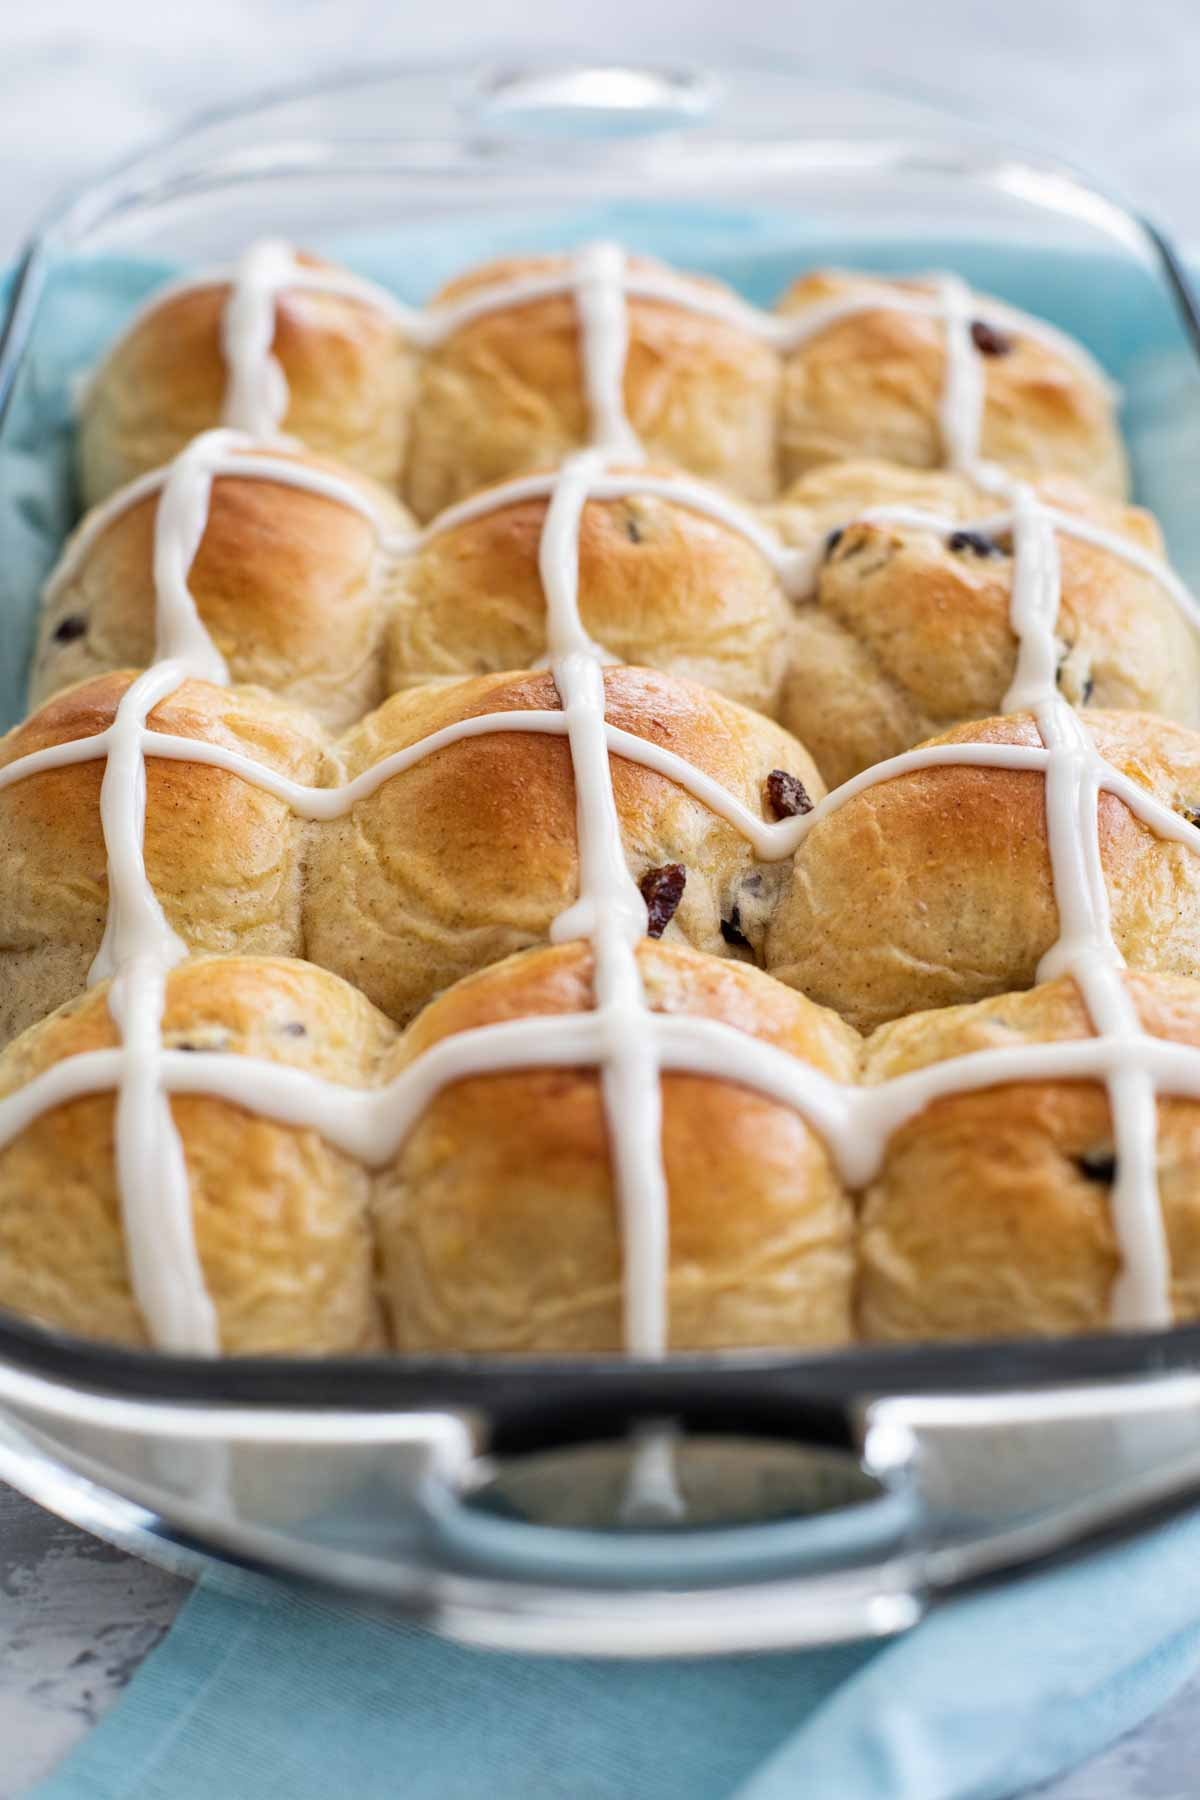 Pan of Hot Cross Buns with icing